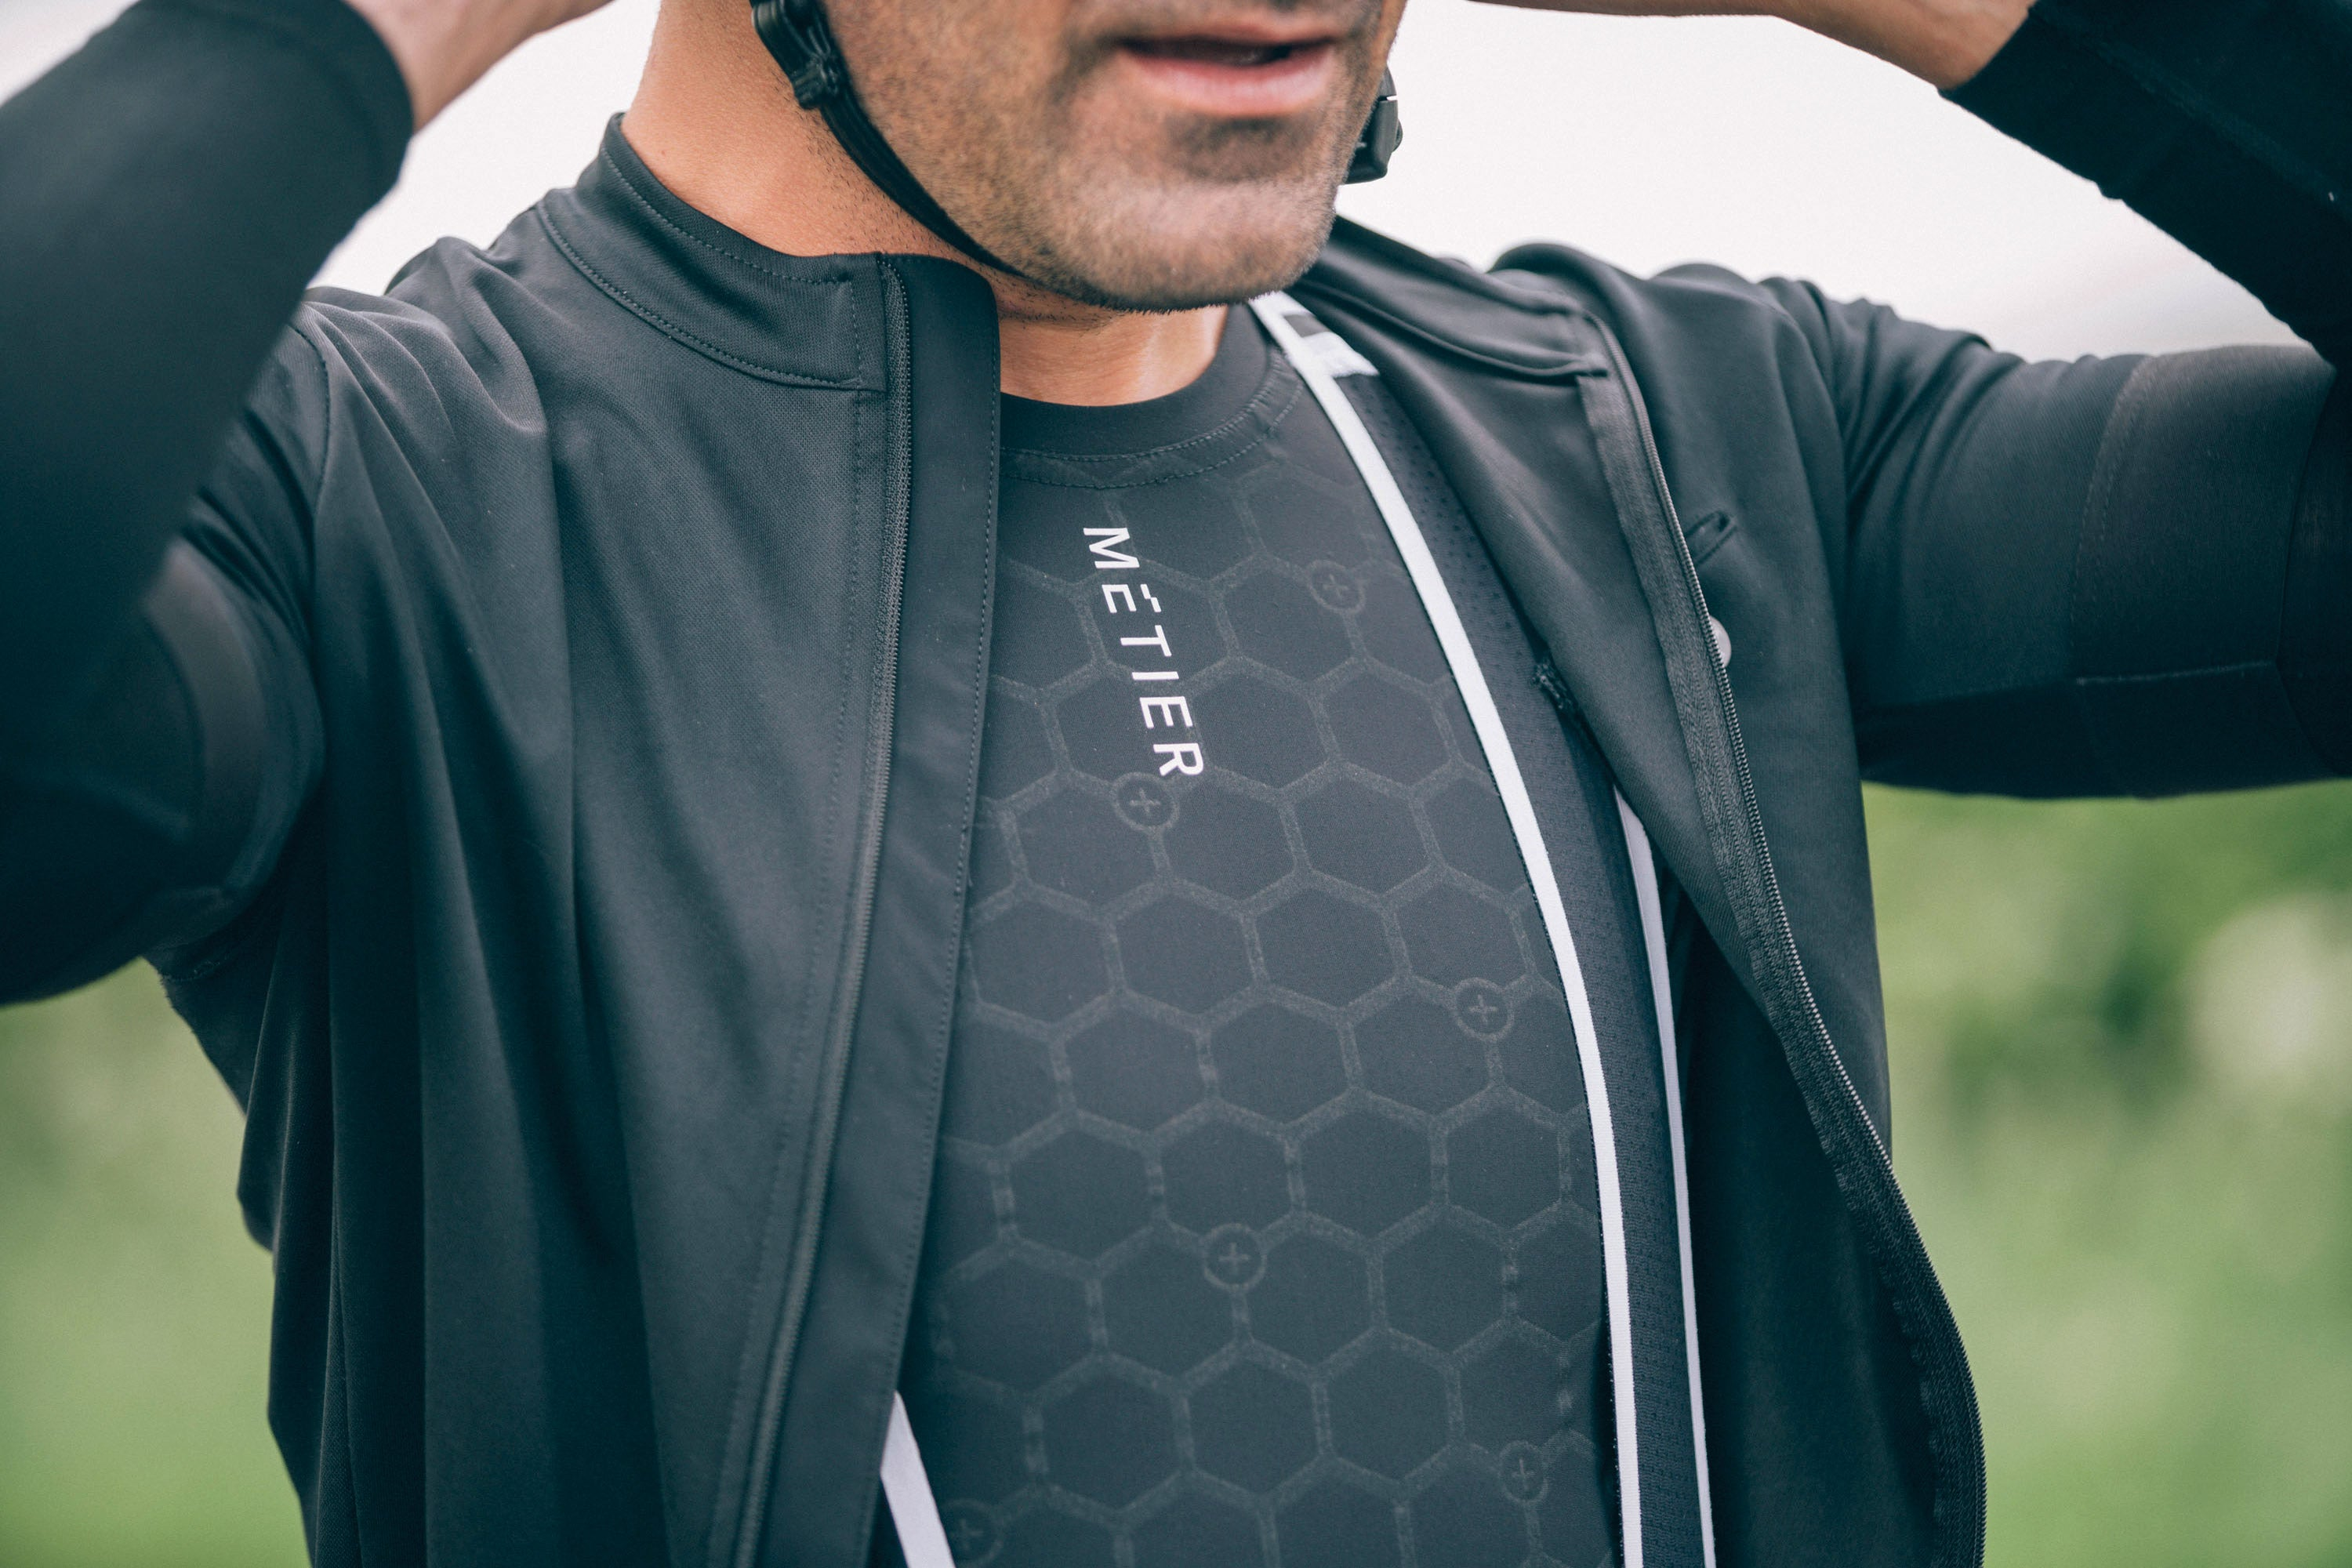 On long or short rides, comfort is paramount. The seamless bonding, compression fit and quick dry nanotech fabric of the Element race layer all contribute to an athletic feel and fit that give you real confidence on your ride. And thanks to the antibacterial properties of the fabric, you can ride day, after day, after day.